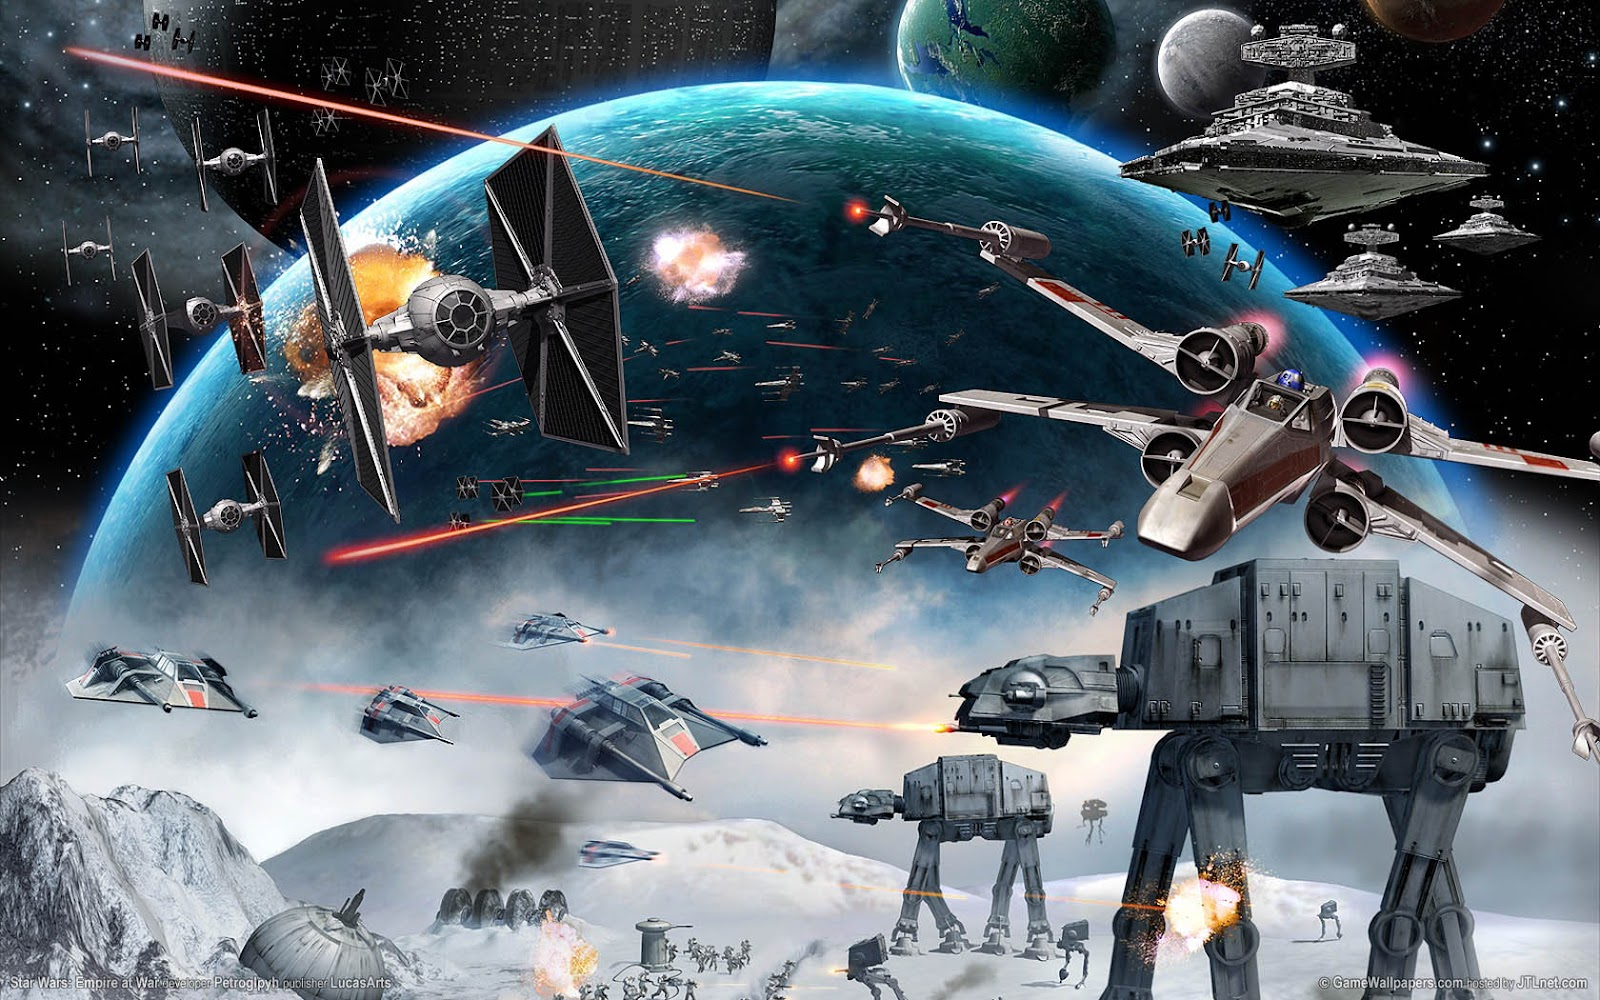 http://1.bp.blogspot.com/-42XlMe5nogc/TvwV4AFQq3I/AAAAAAAAR4s/AKcga1WM-AE/s1600/wallpaper_star_wars_empire_at_war_02_1680x1050.jpg